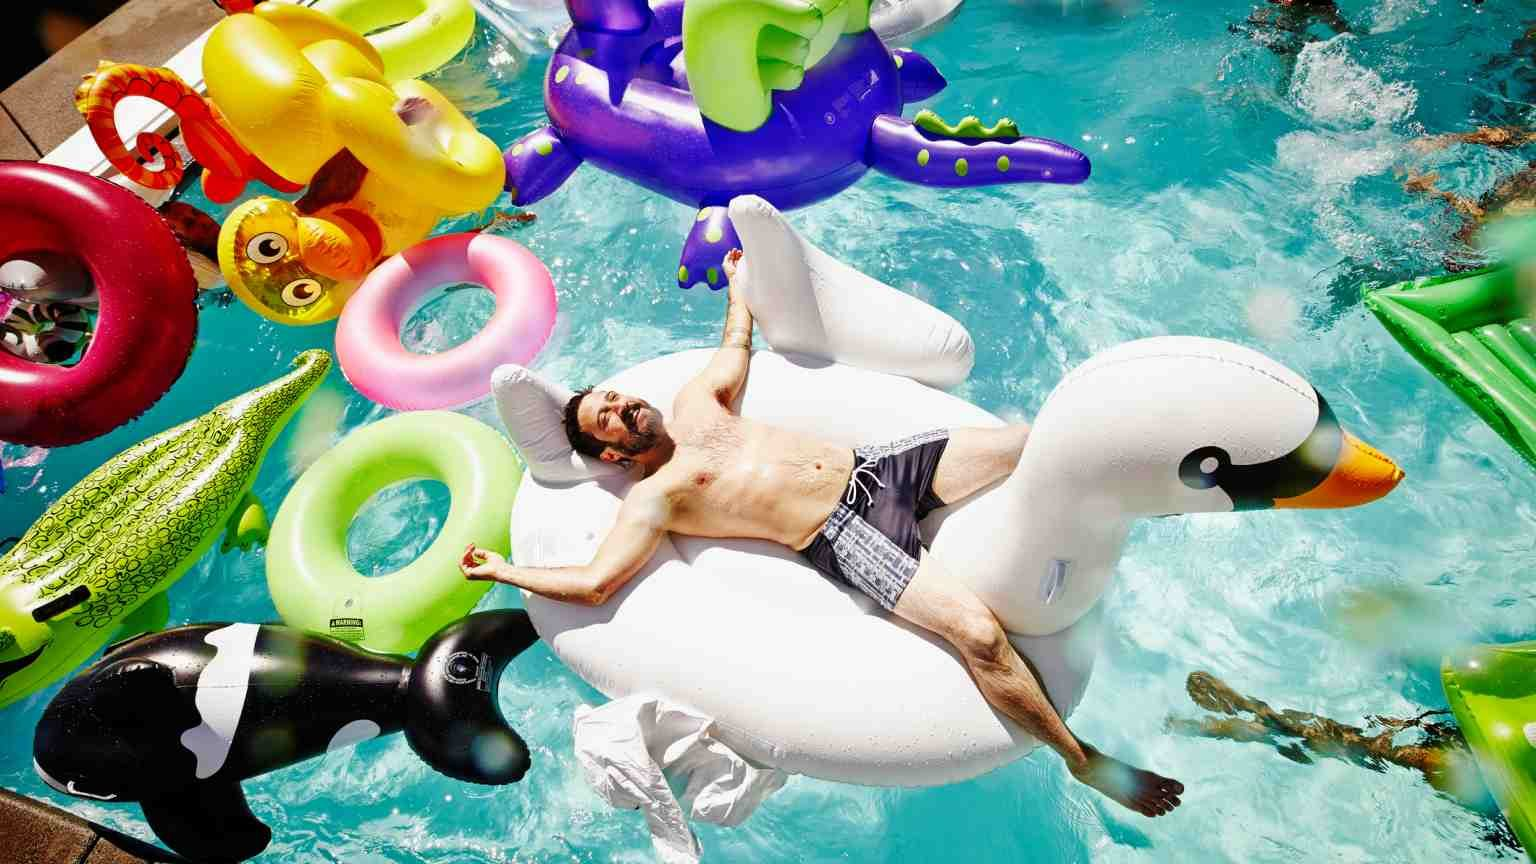 Smiling man relaxing on large inflatable swan in outdoor pool filled with multiple pool toys and friends swimming in background (Smiling man relaxing on large inflatable swan in outdoor pool filled with multiple pool toys and friends swimming in backg